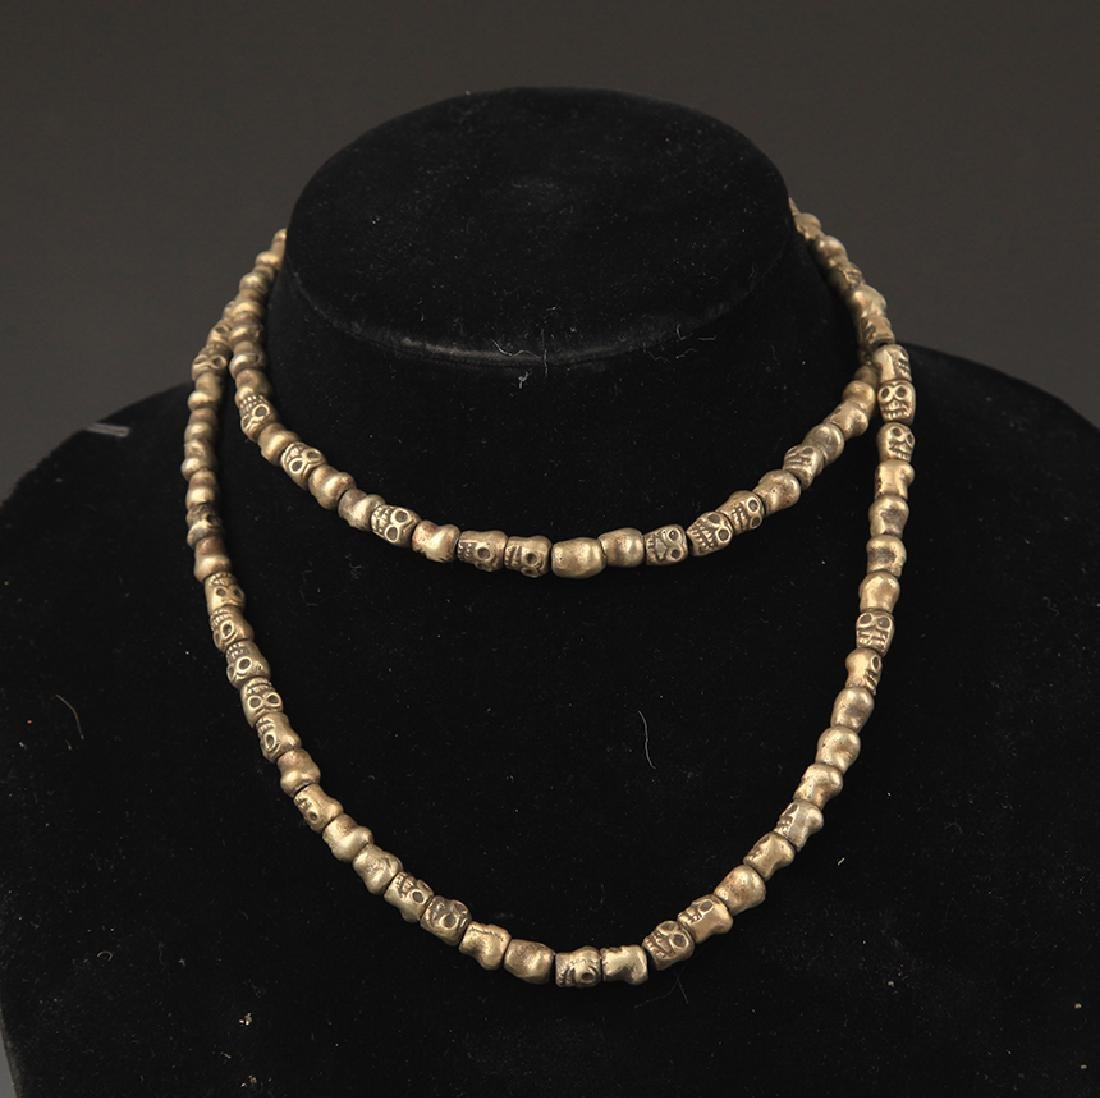 A FINELY CARVED BRONZE SKULL NECKLACE